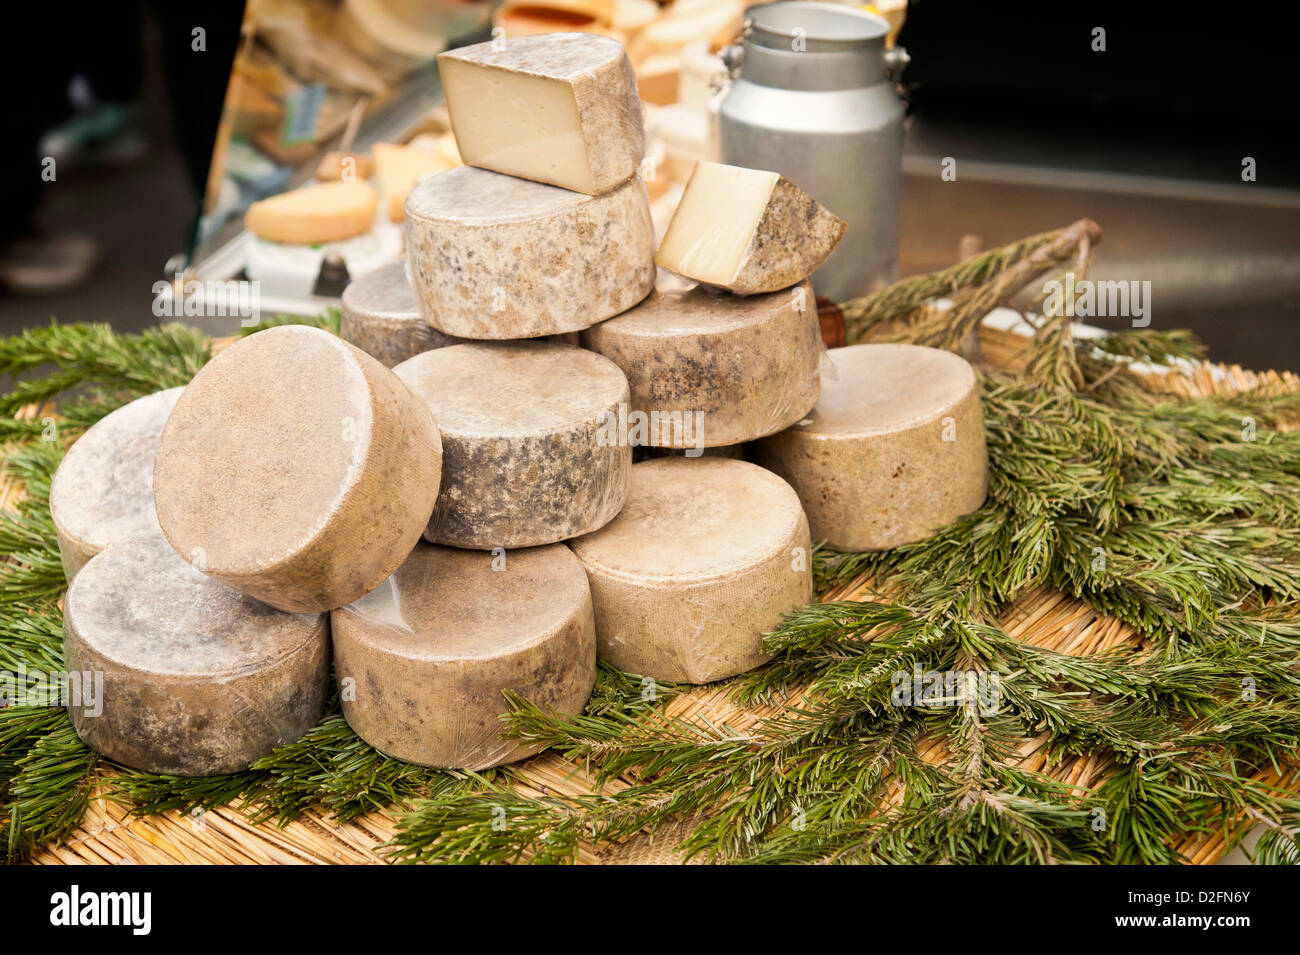 Display of Cheeses on a market stall UK - Stock Image